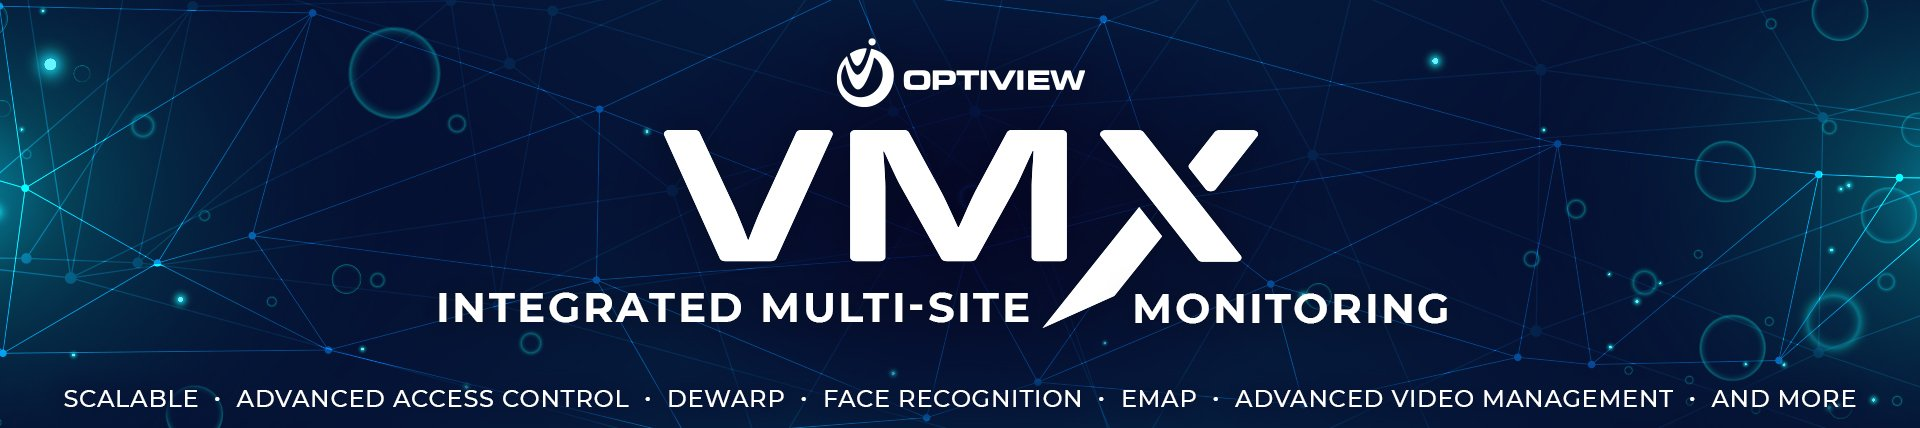 The Optiview VMX - Integrated Multi-Site Monitoring